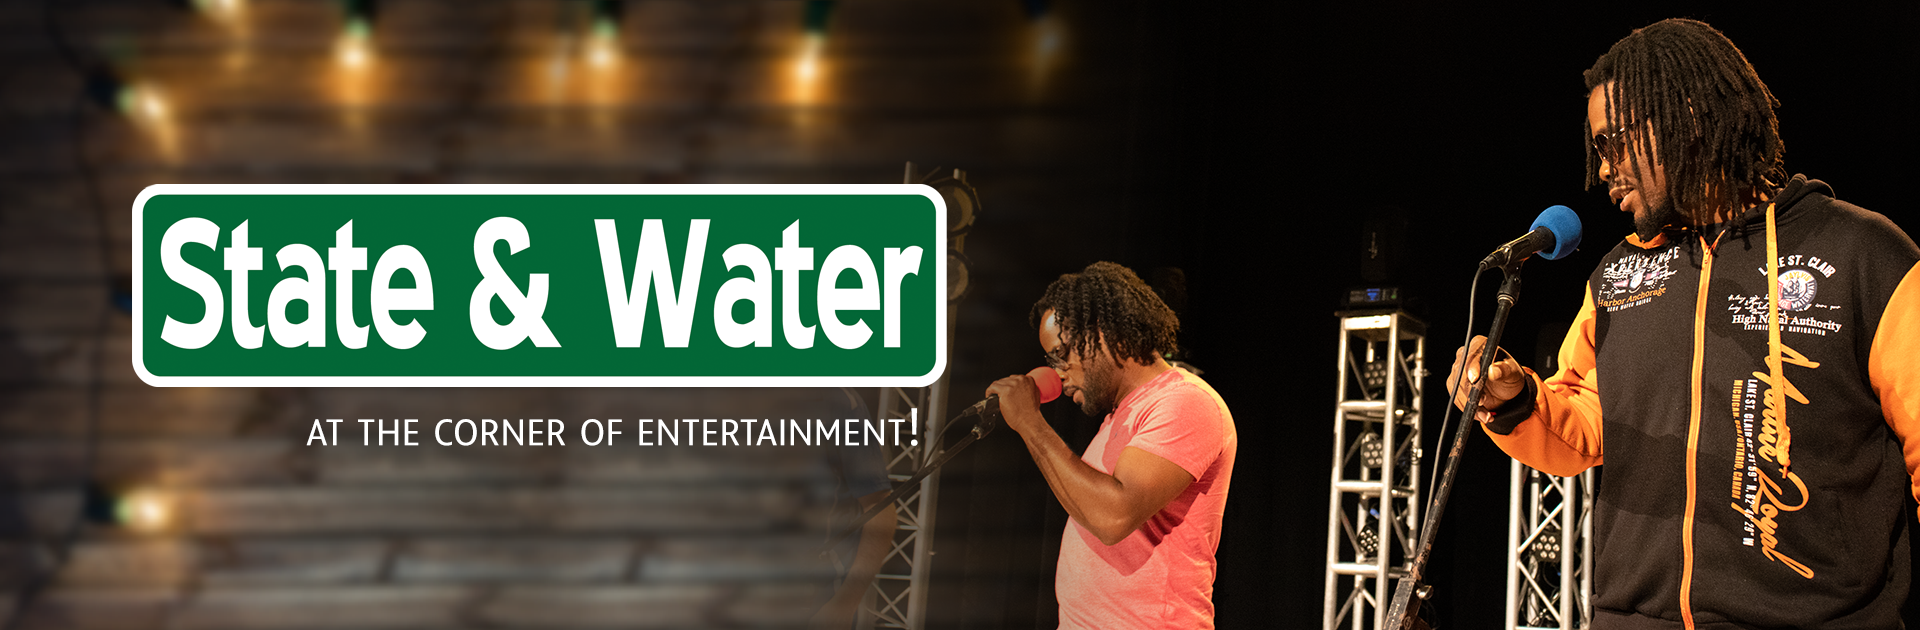 State & Water: Warith and M.C.